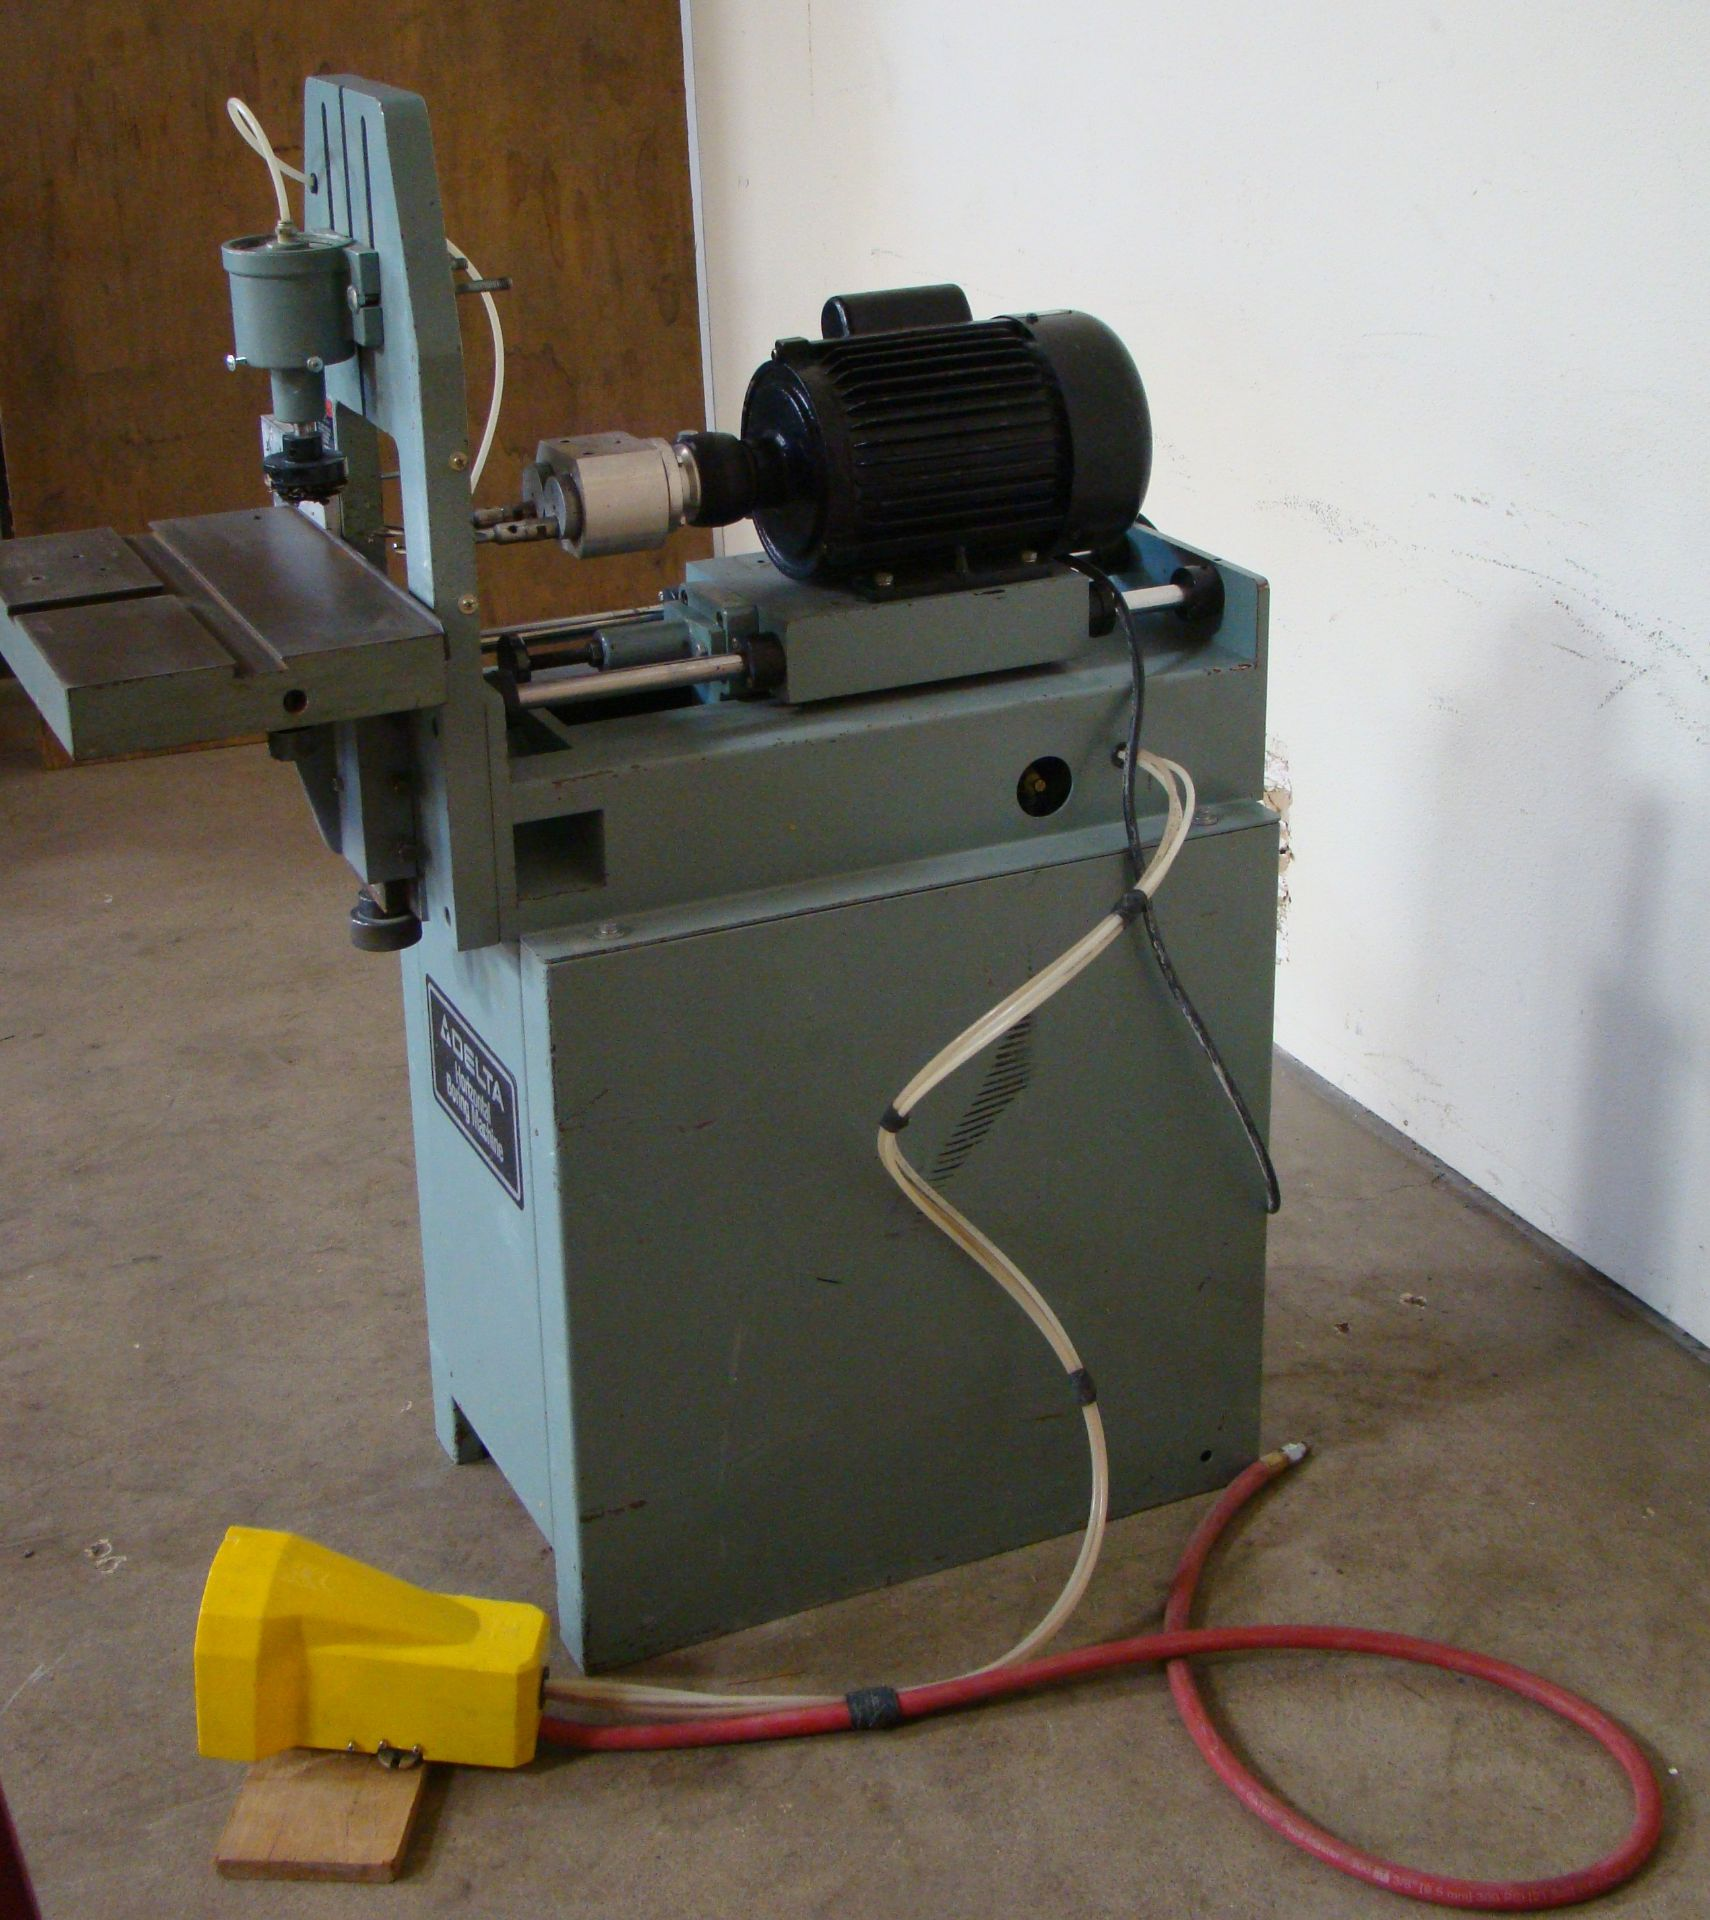 Lot 7 - Delta Horizontal 2 Spindle Boring Machine Model #32-350, 1 HP 115/230 Volt